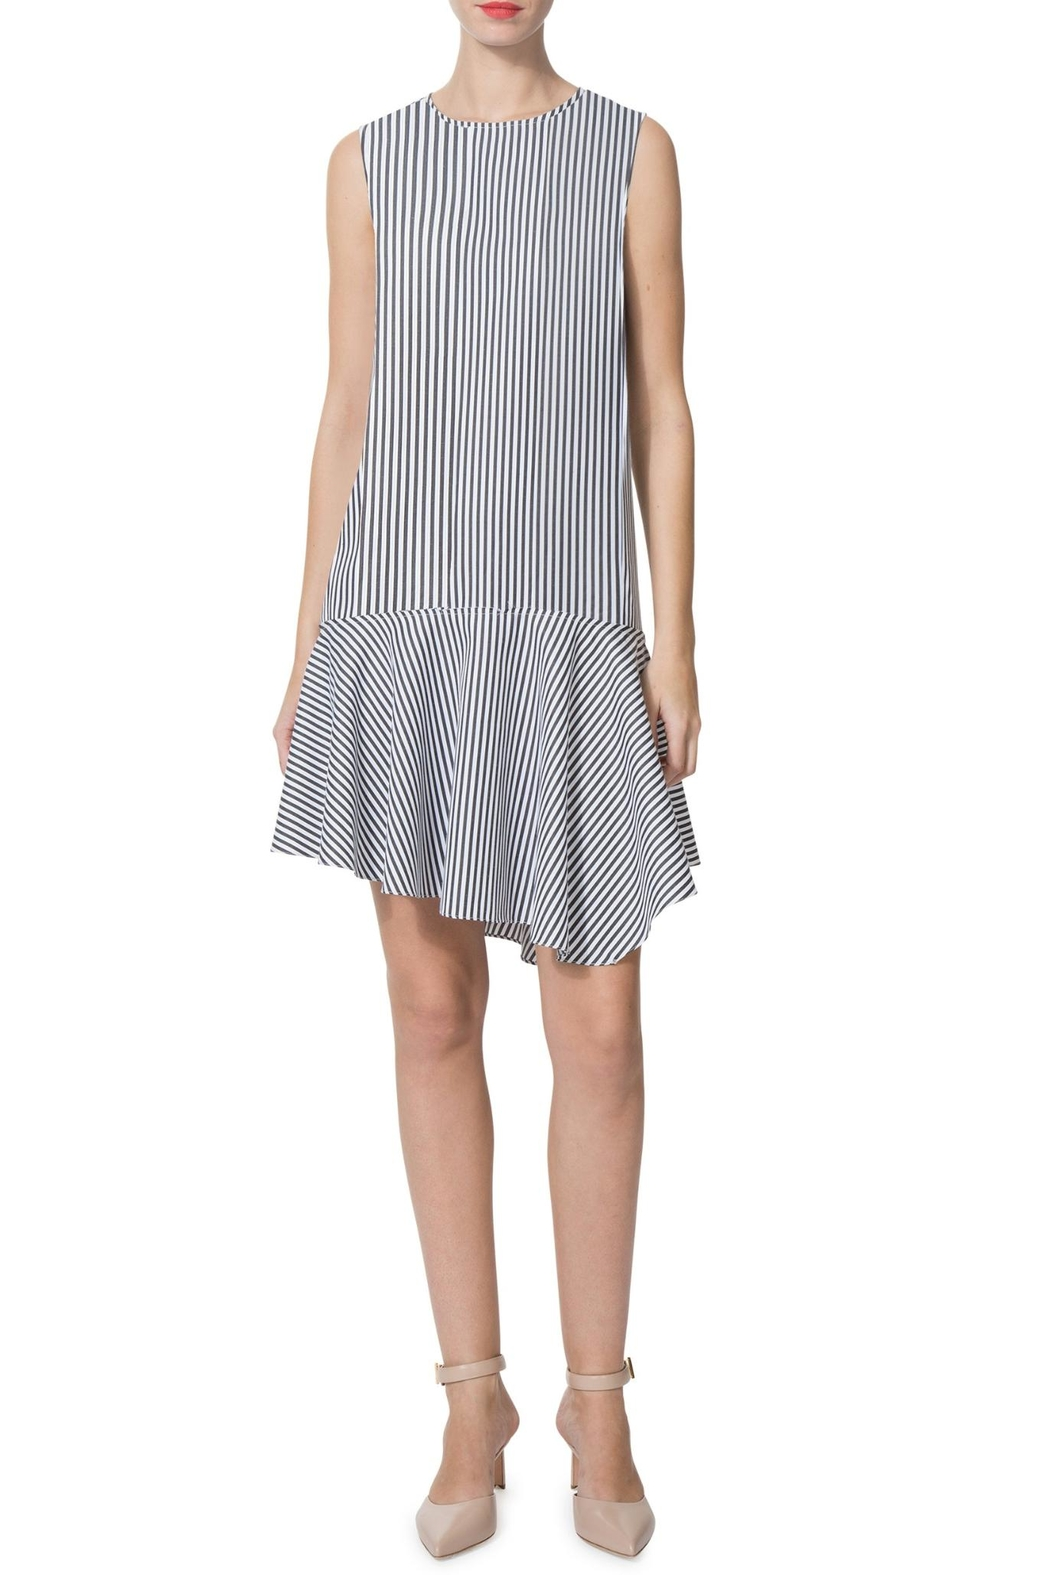 Donna Morgan Edie Striped-Poplin Dress - Front Cropped Image